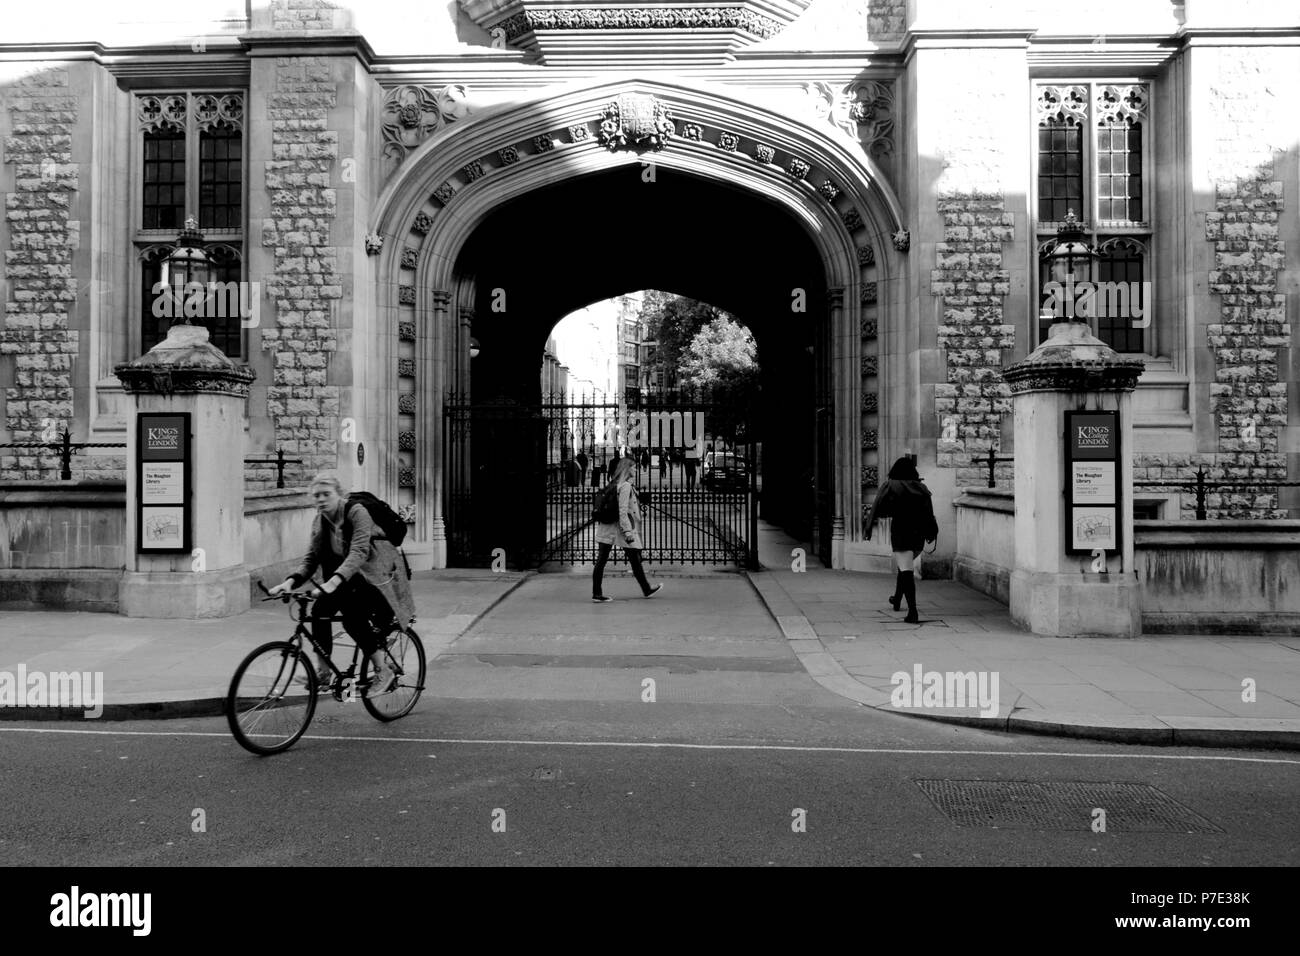 Maughan Library Gate of Kings College London, UK, designed by Sir James Pennethorne. - Stock Image